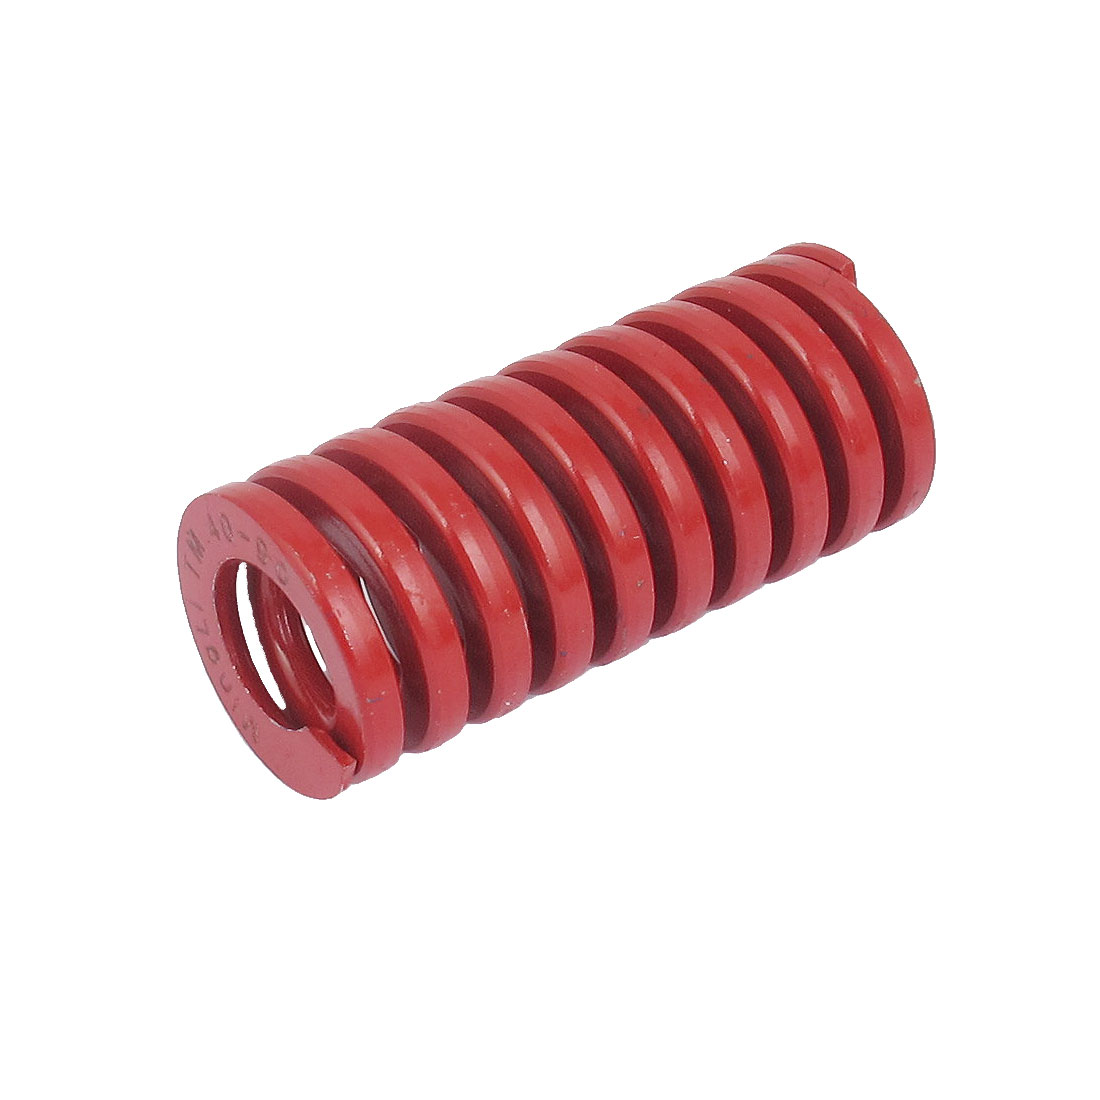 40mm OD 90mm Long Medium Load Spiral Stamping Compression Die Spring Red